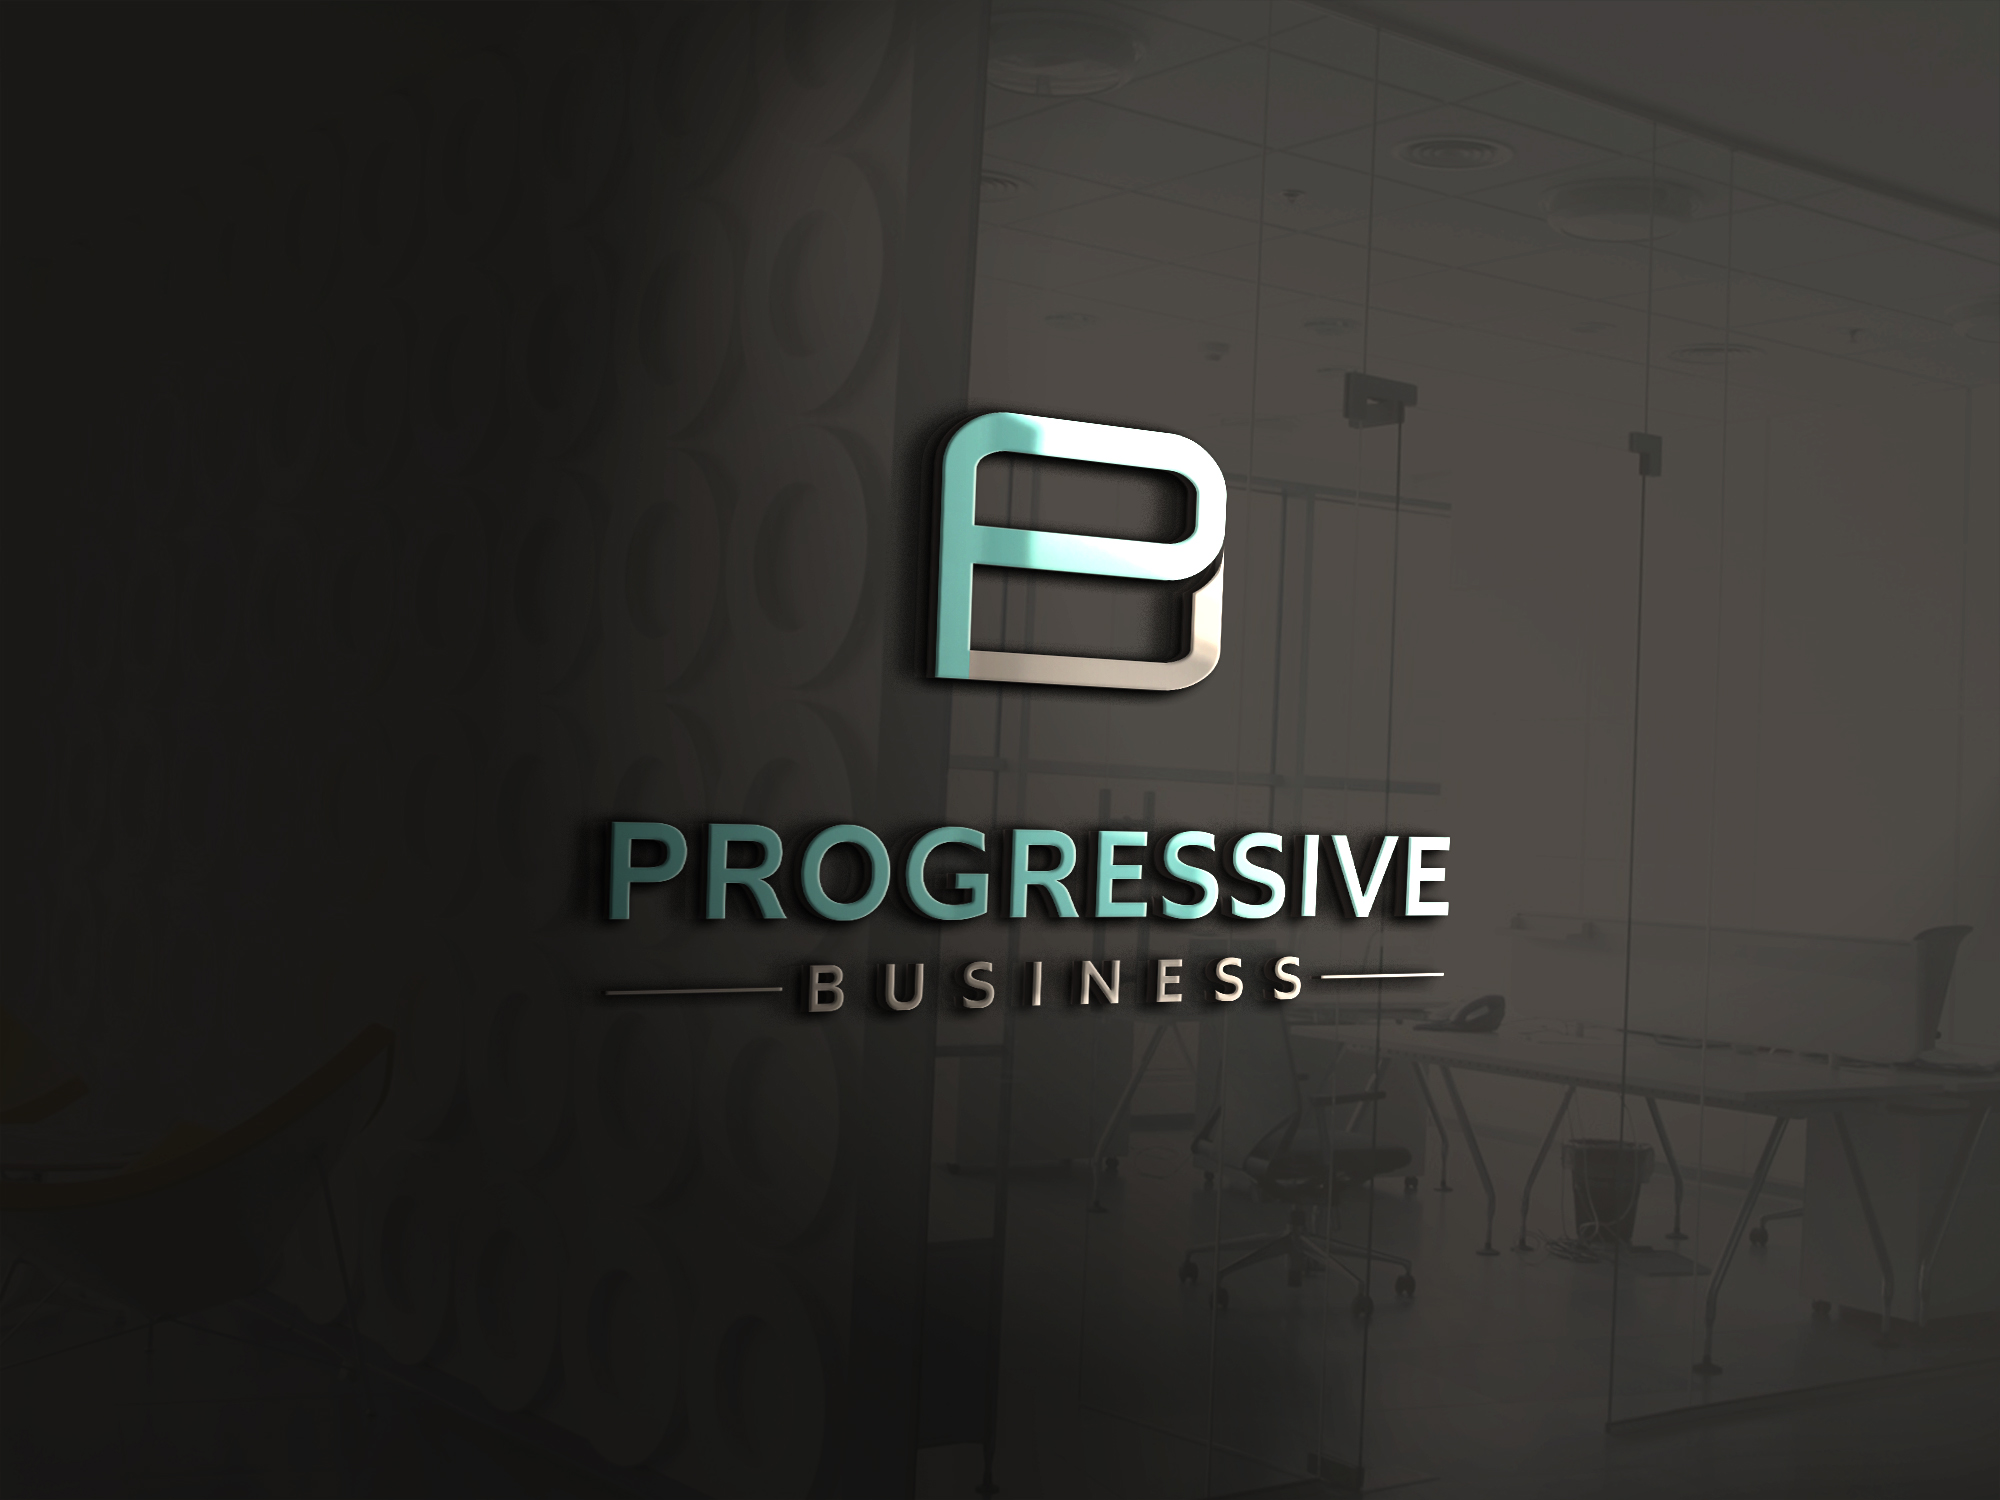 Logo Design by Umair ahmed Iqbal - Entry No. 220 in the Logo Design Contest Captivating Logo Design for Progressive Business.